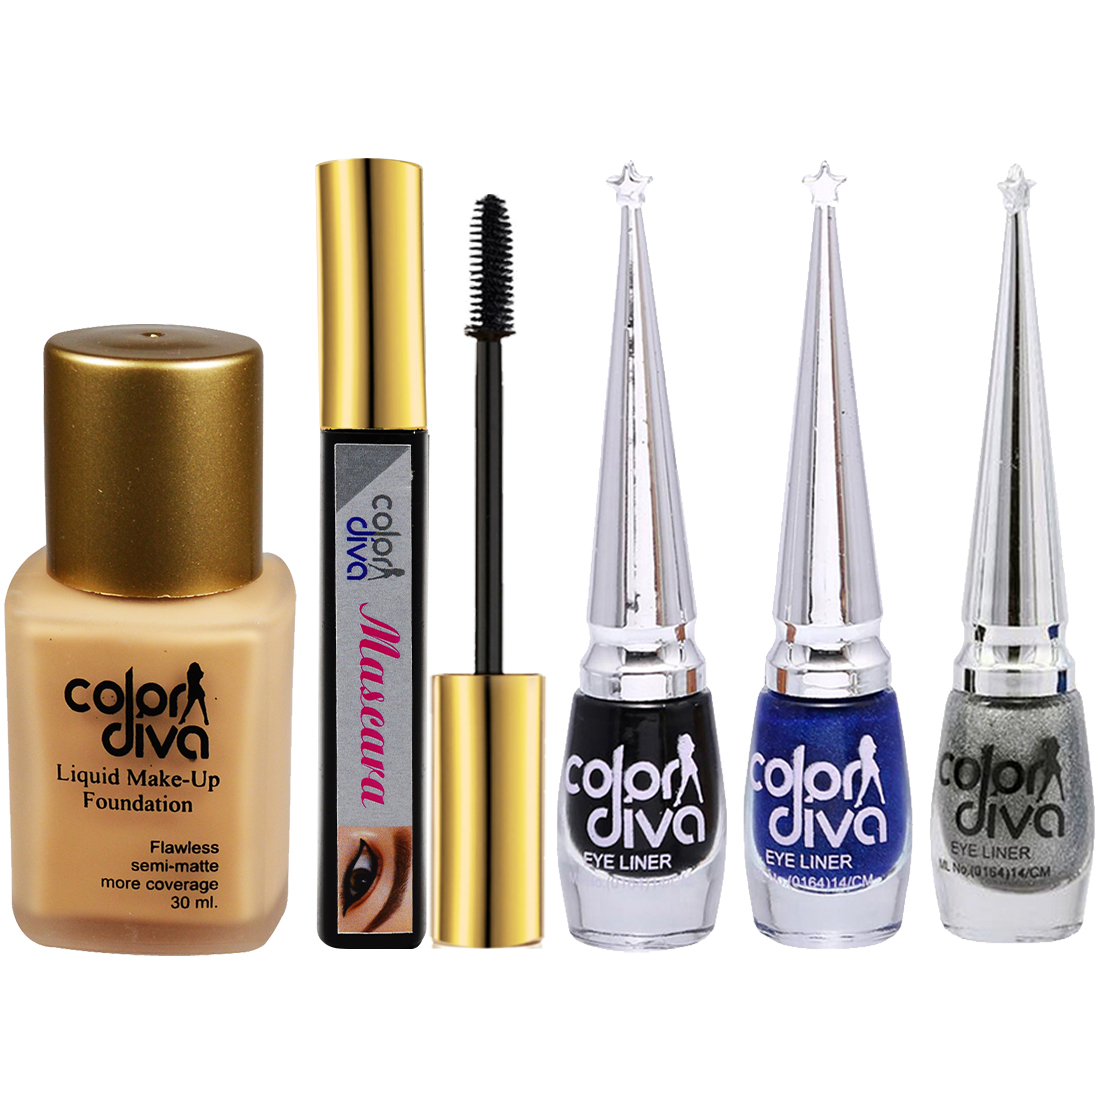 Adbeni Combo - Skin Diva Gold & Diamond Facial Kit With Color Diva Eyeliner, Mascar & Foundation, Pack of 7, (GC1441)